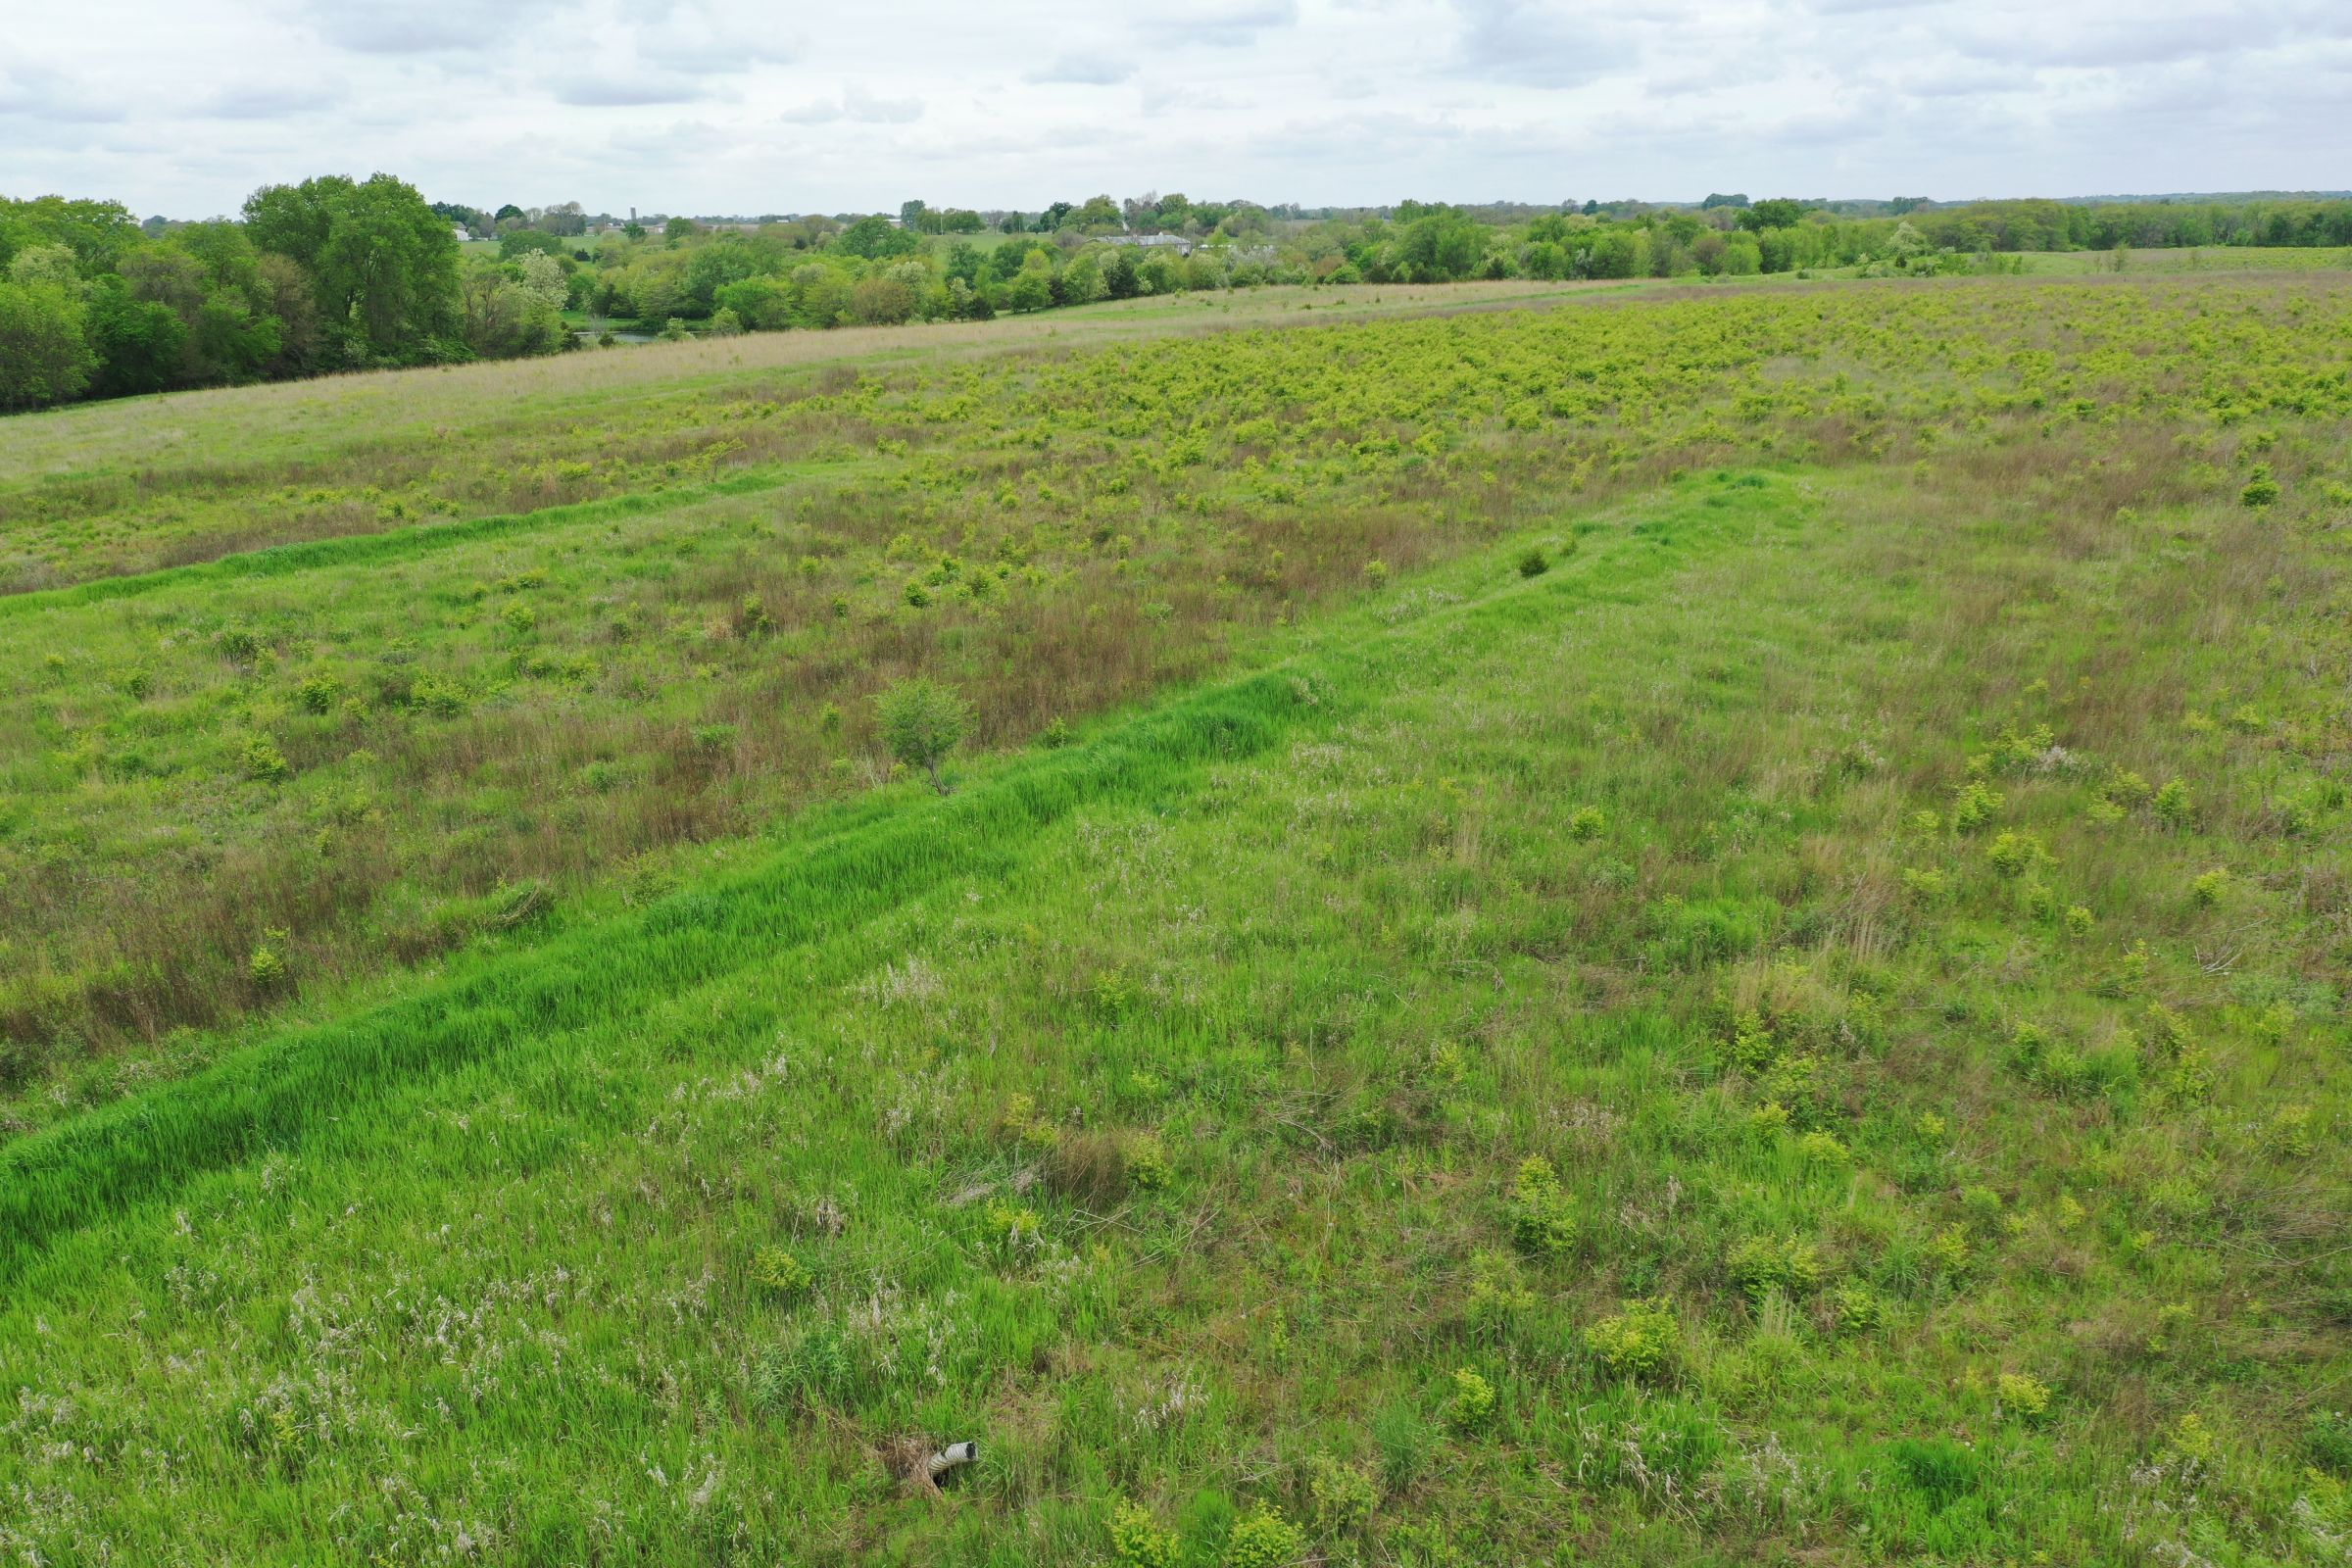 land-dallas-county-iowa-51-acres-listing-number-14894-2-2020-05-27-153122.JPG